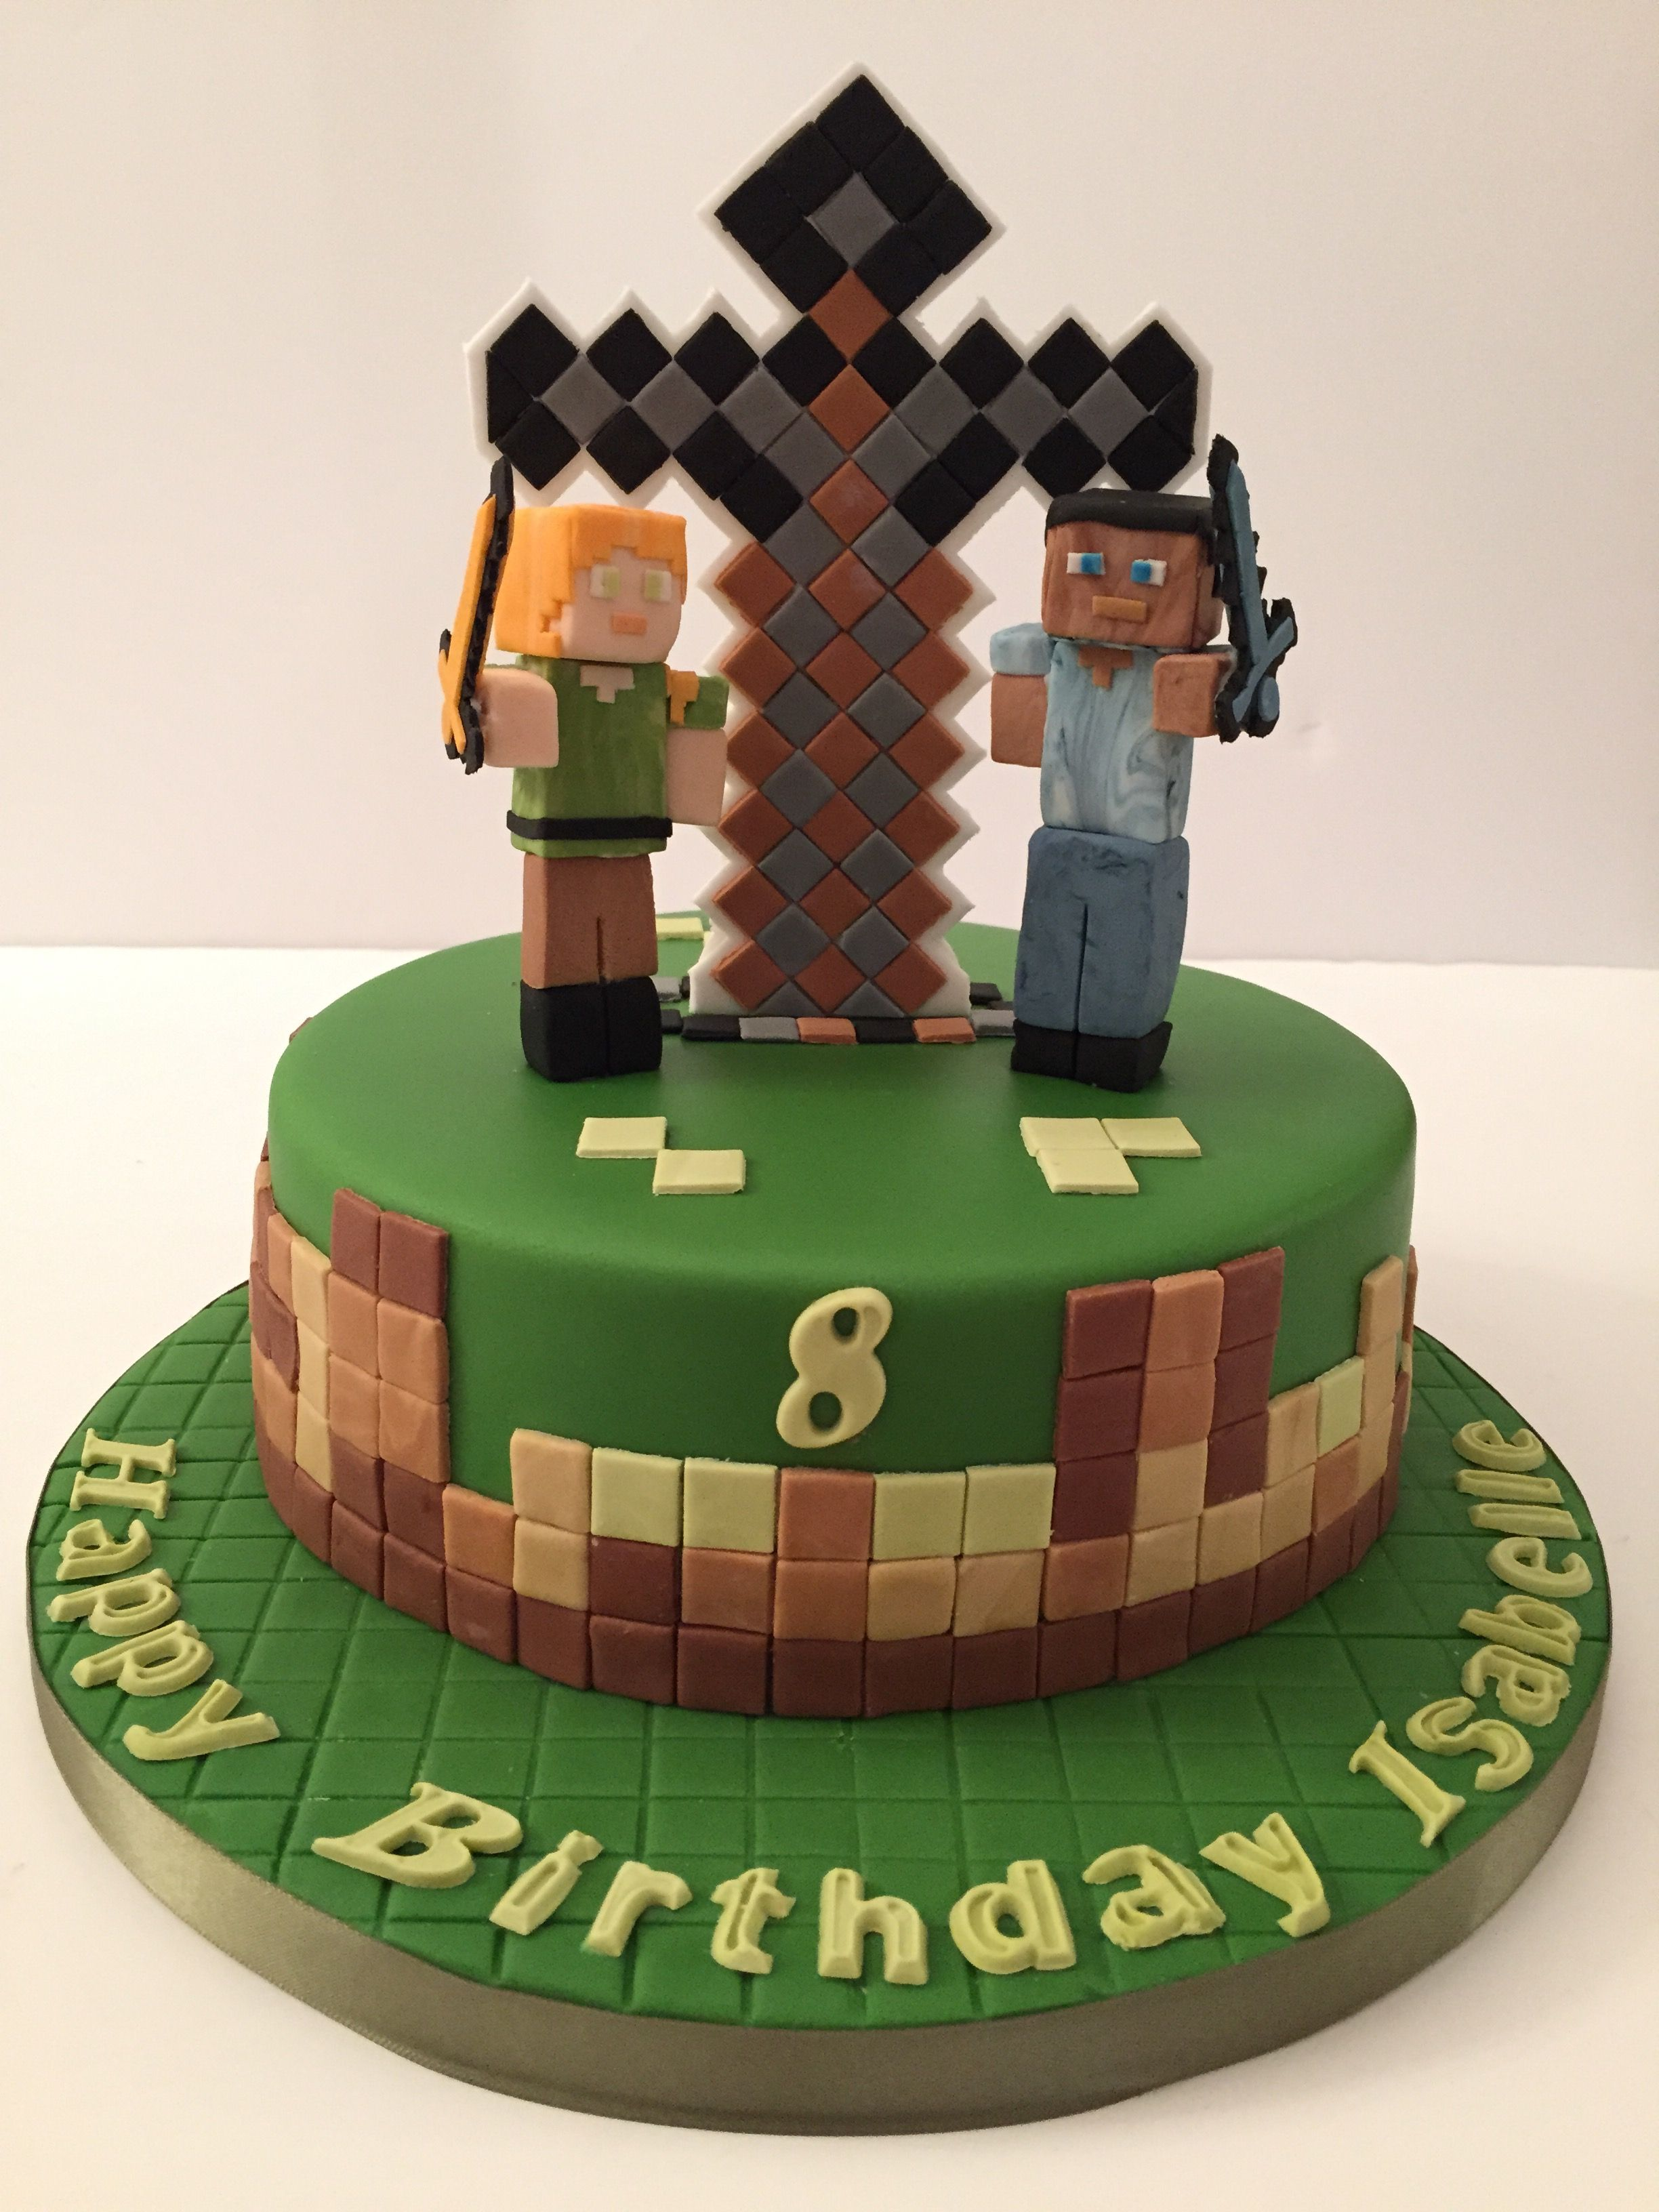 A Minecraft Cake With Steve And Alex Sword Fighting By